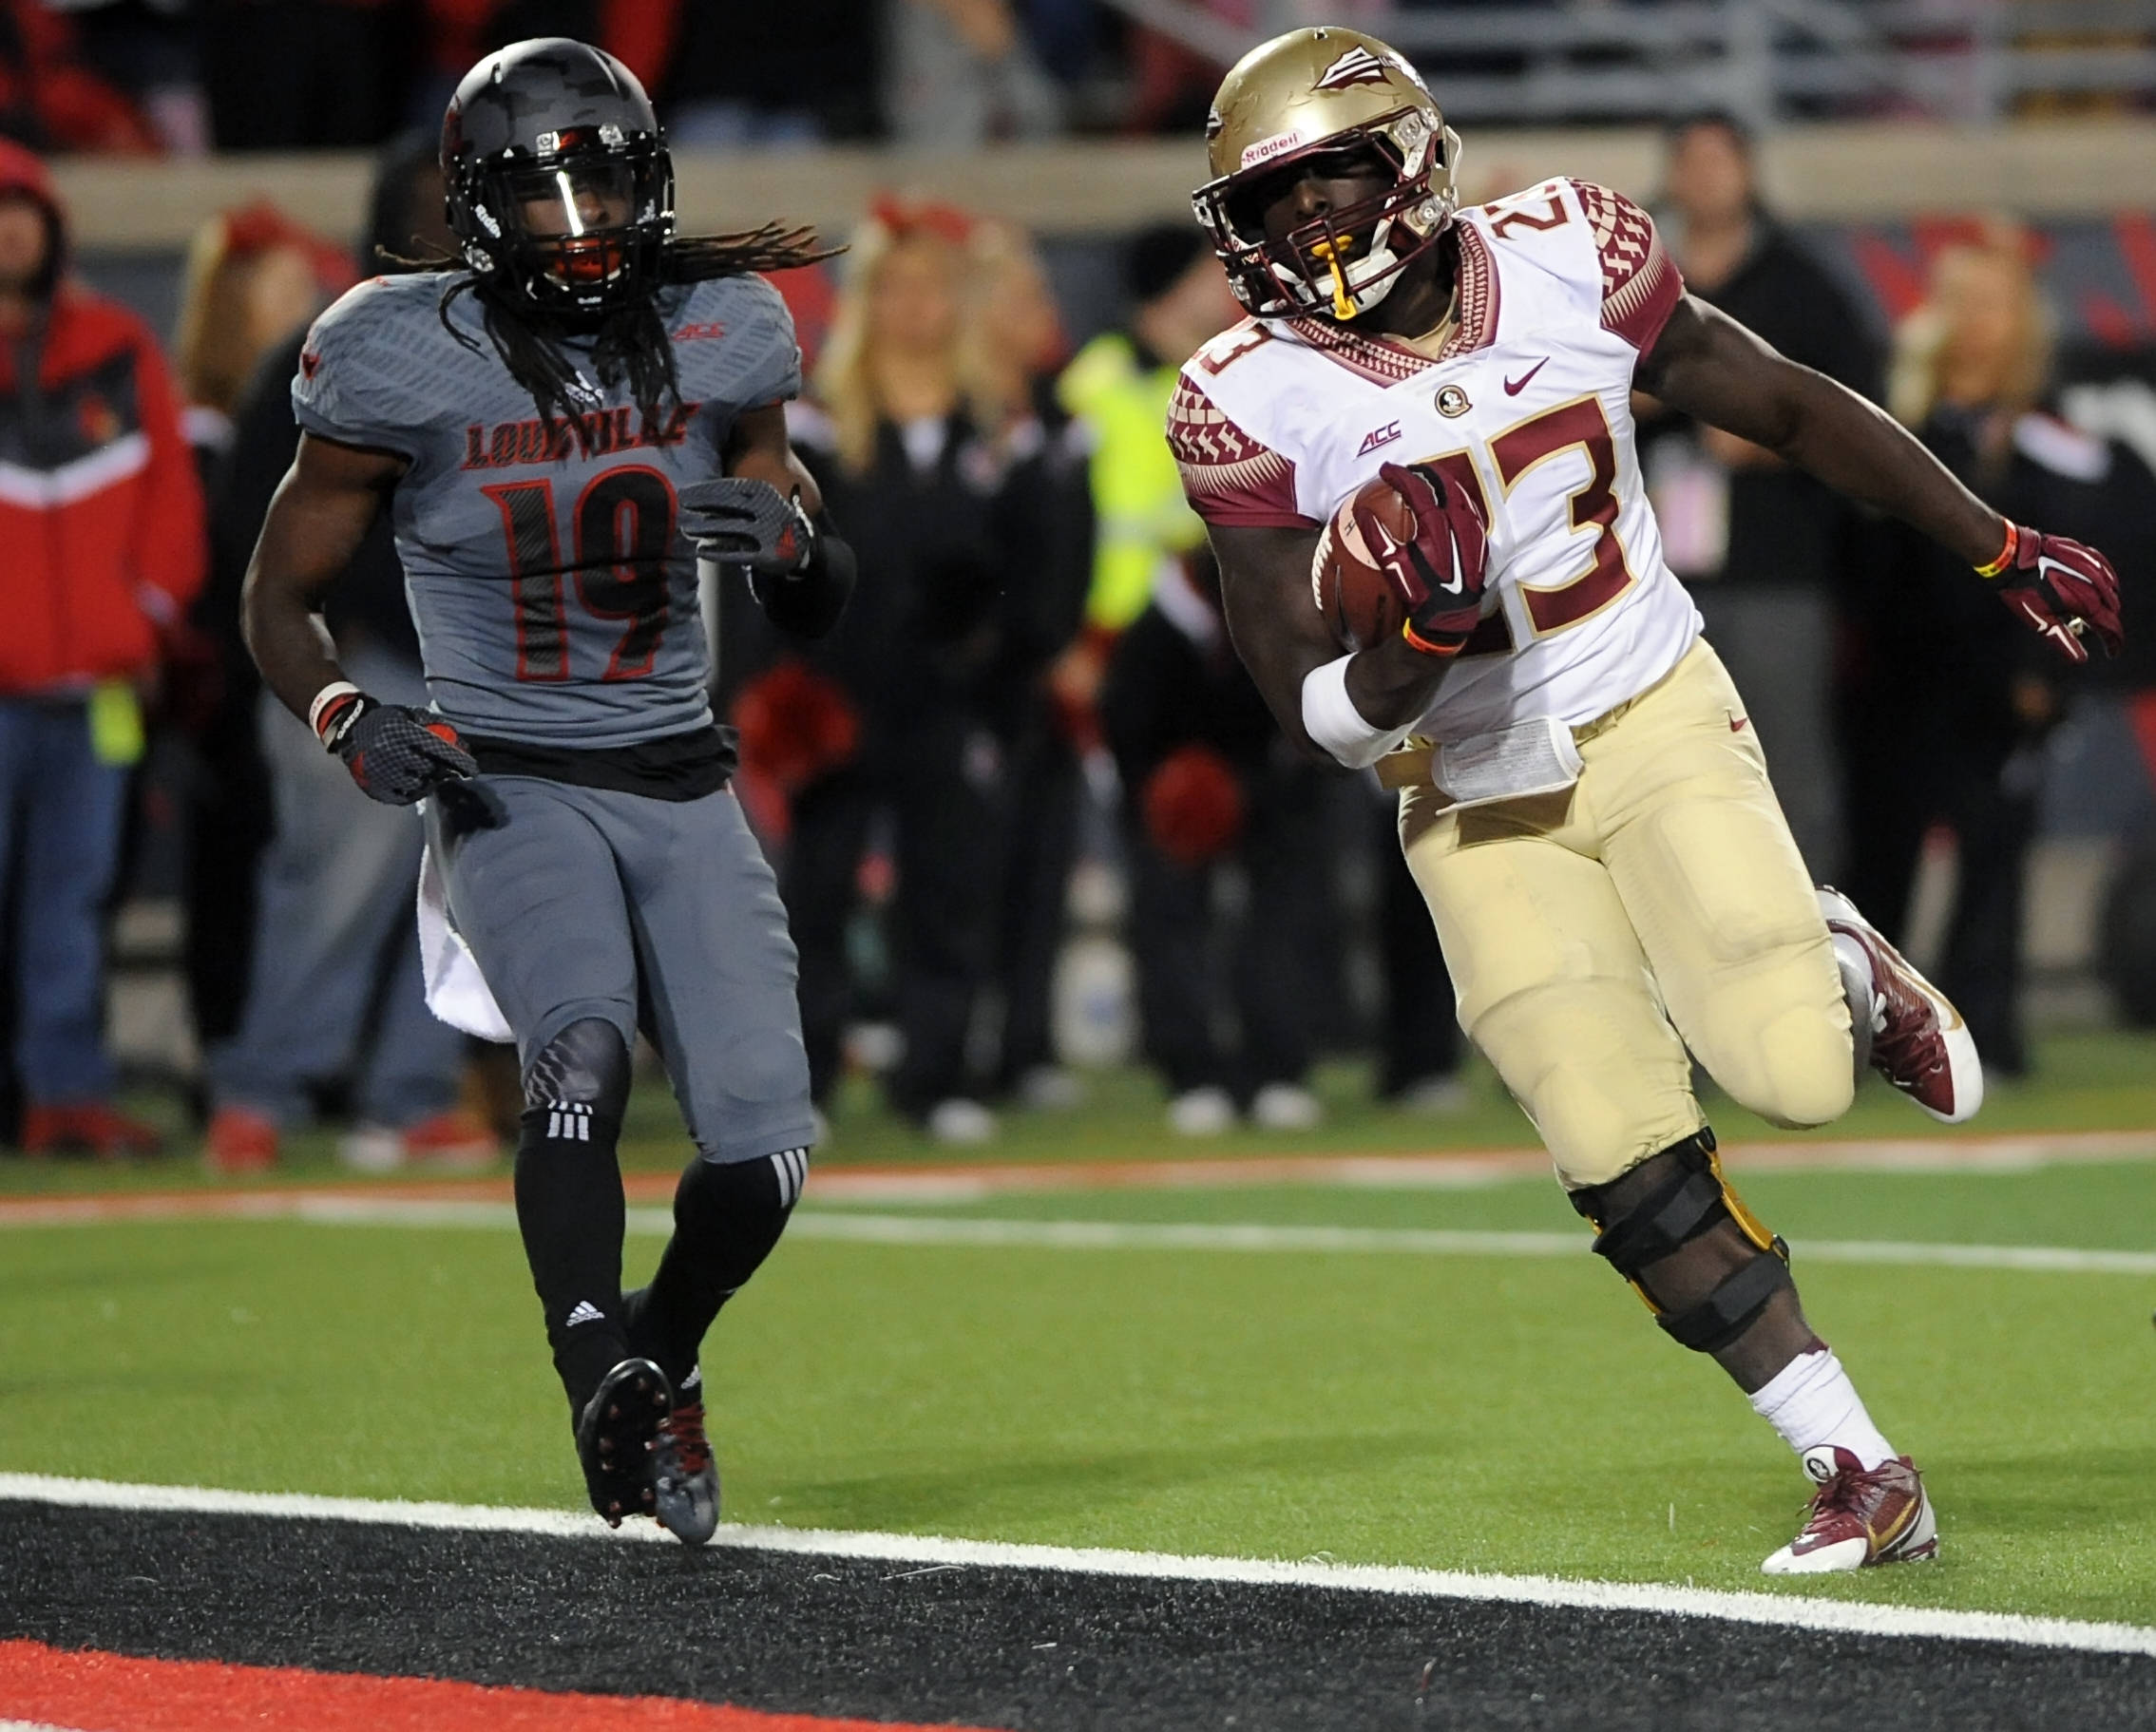 Freddie Stevenson seals the win for the Seminoles late in the game